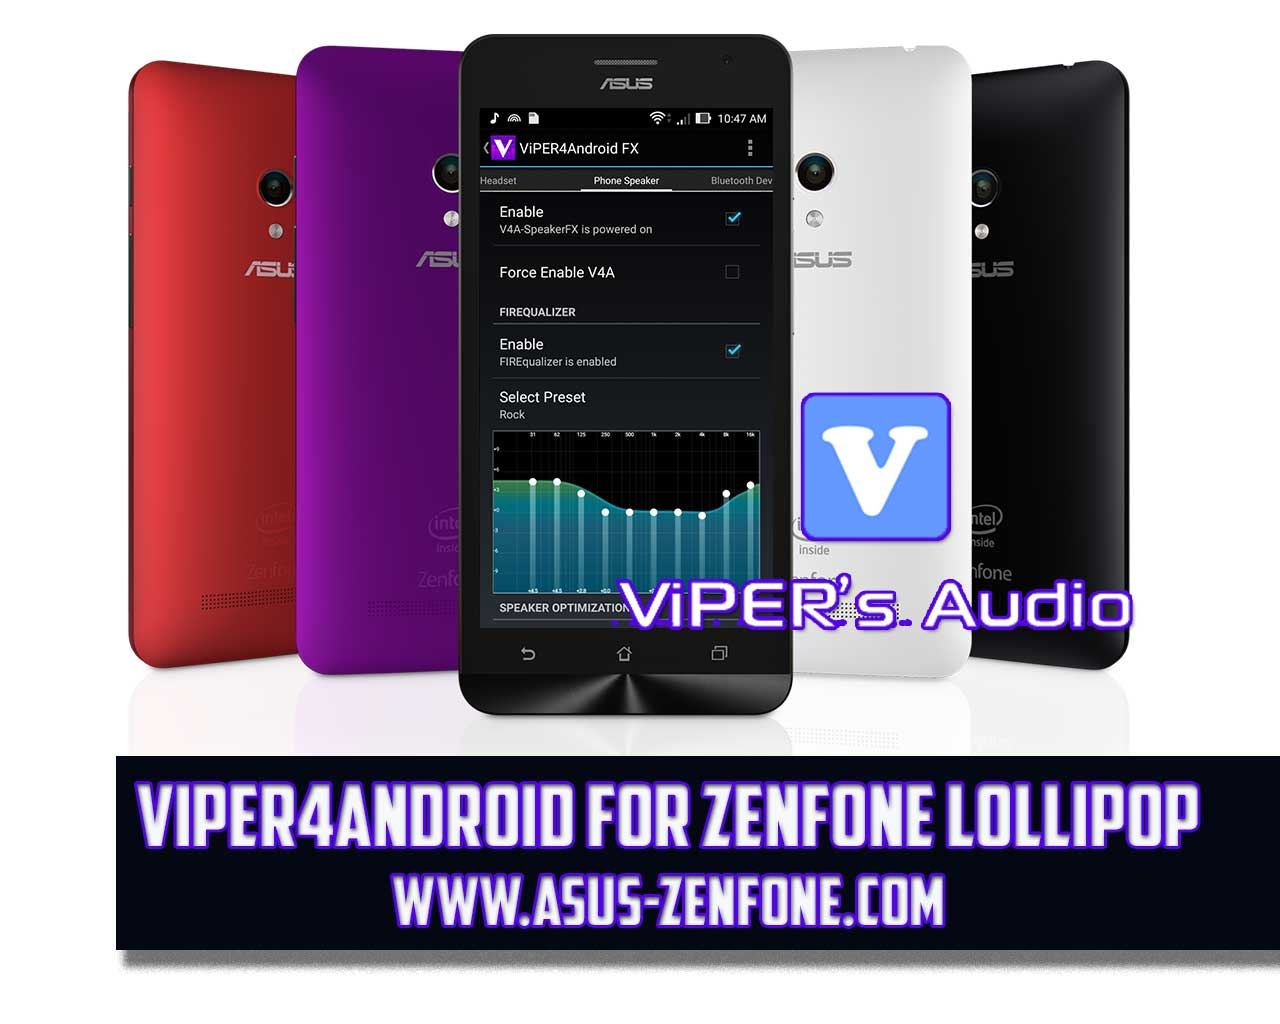 How to Install Viper4Android on Zenfone Lollipop ~ Asus Zenfone Blog